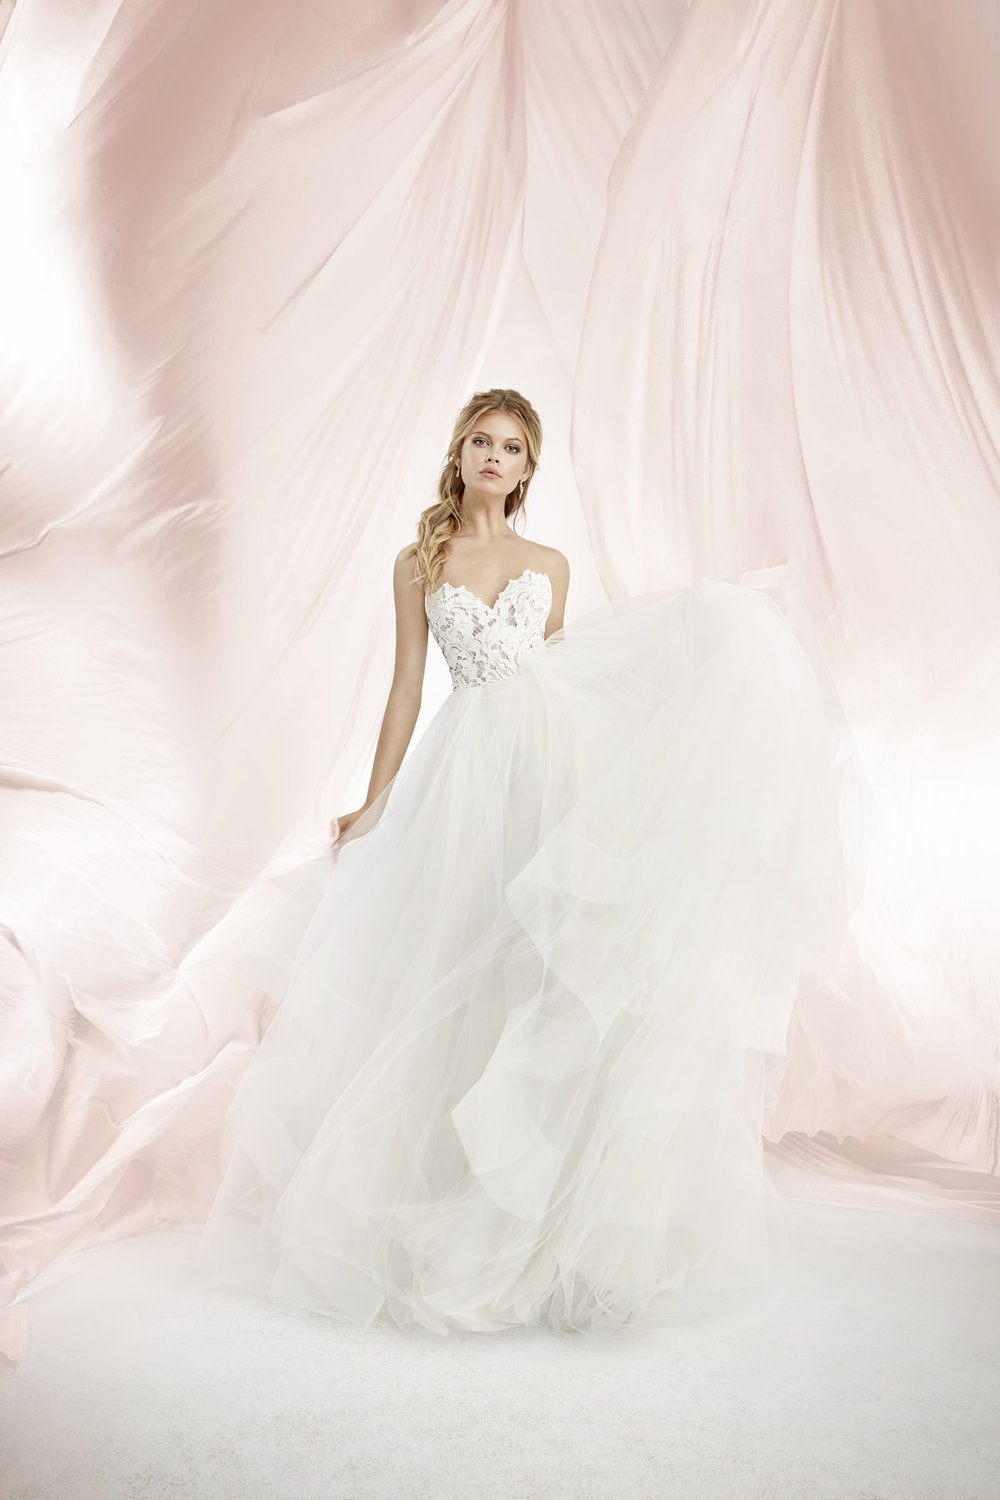 blush-hayley-paige-bridal-fall-2017-style-1760-dayton_8.jpg